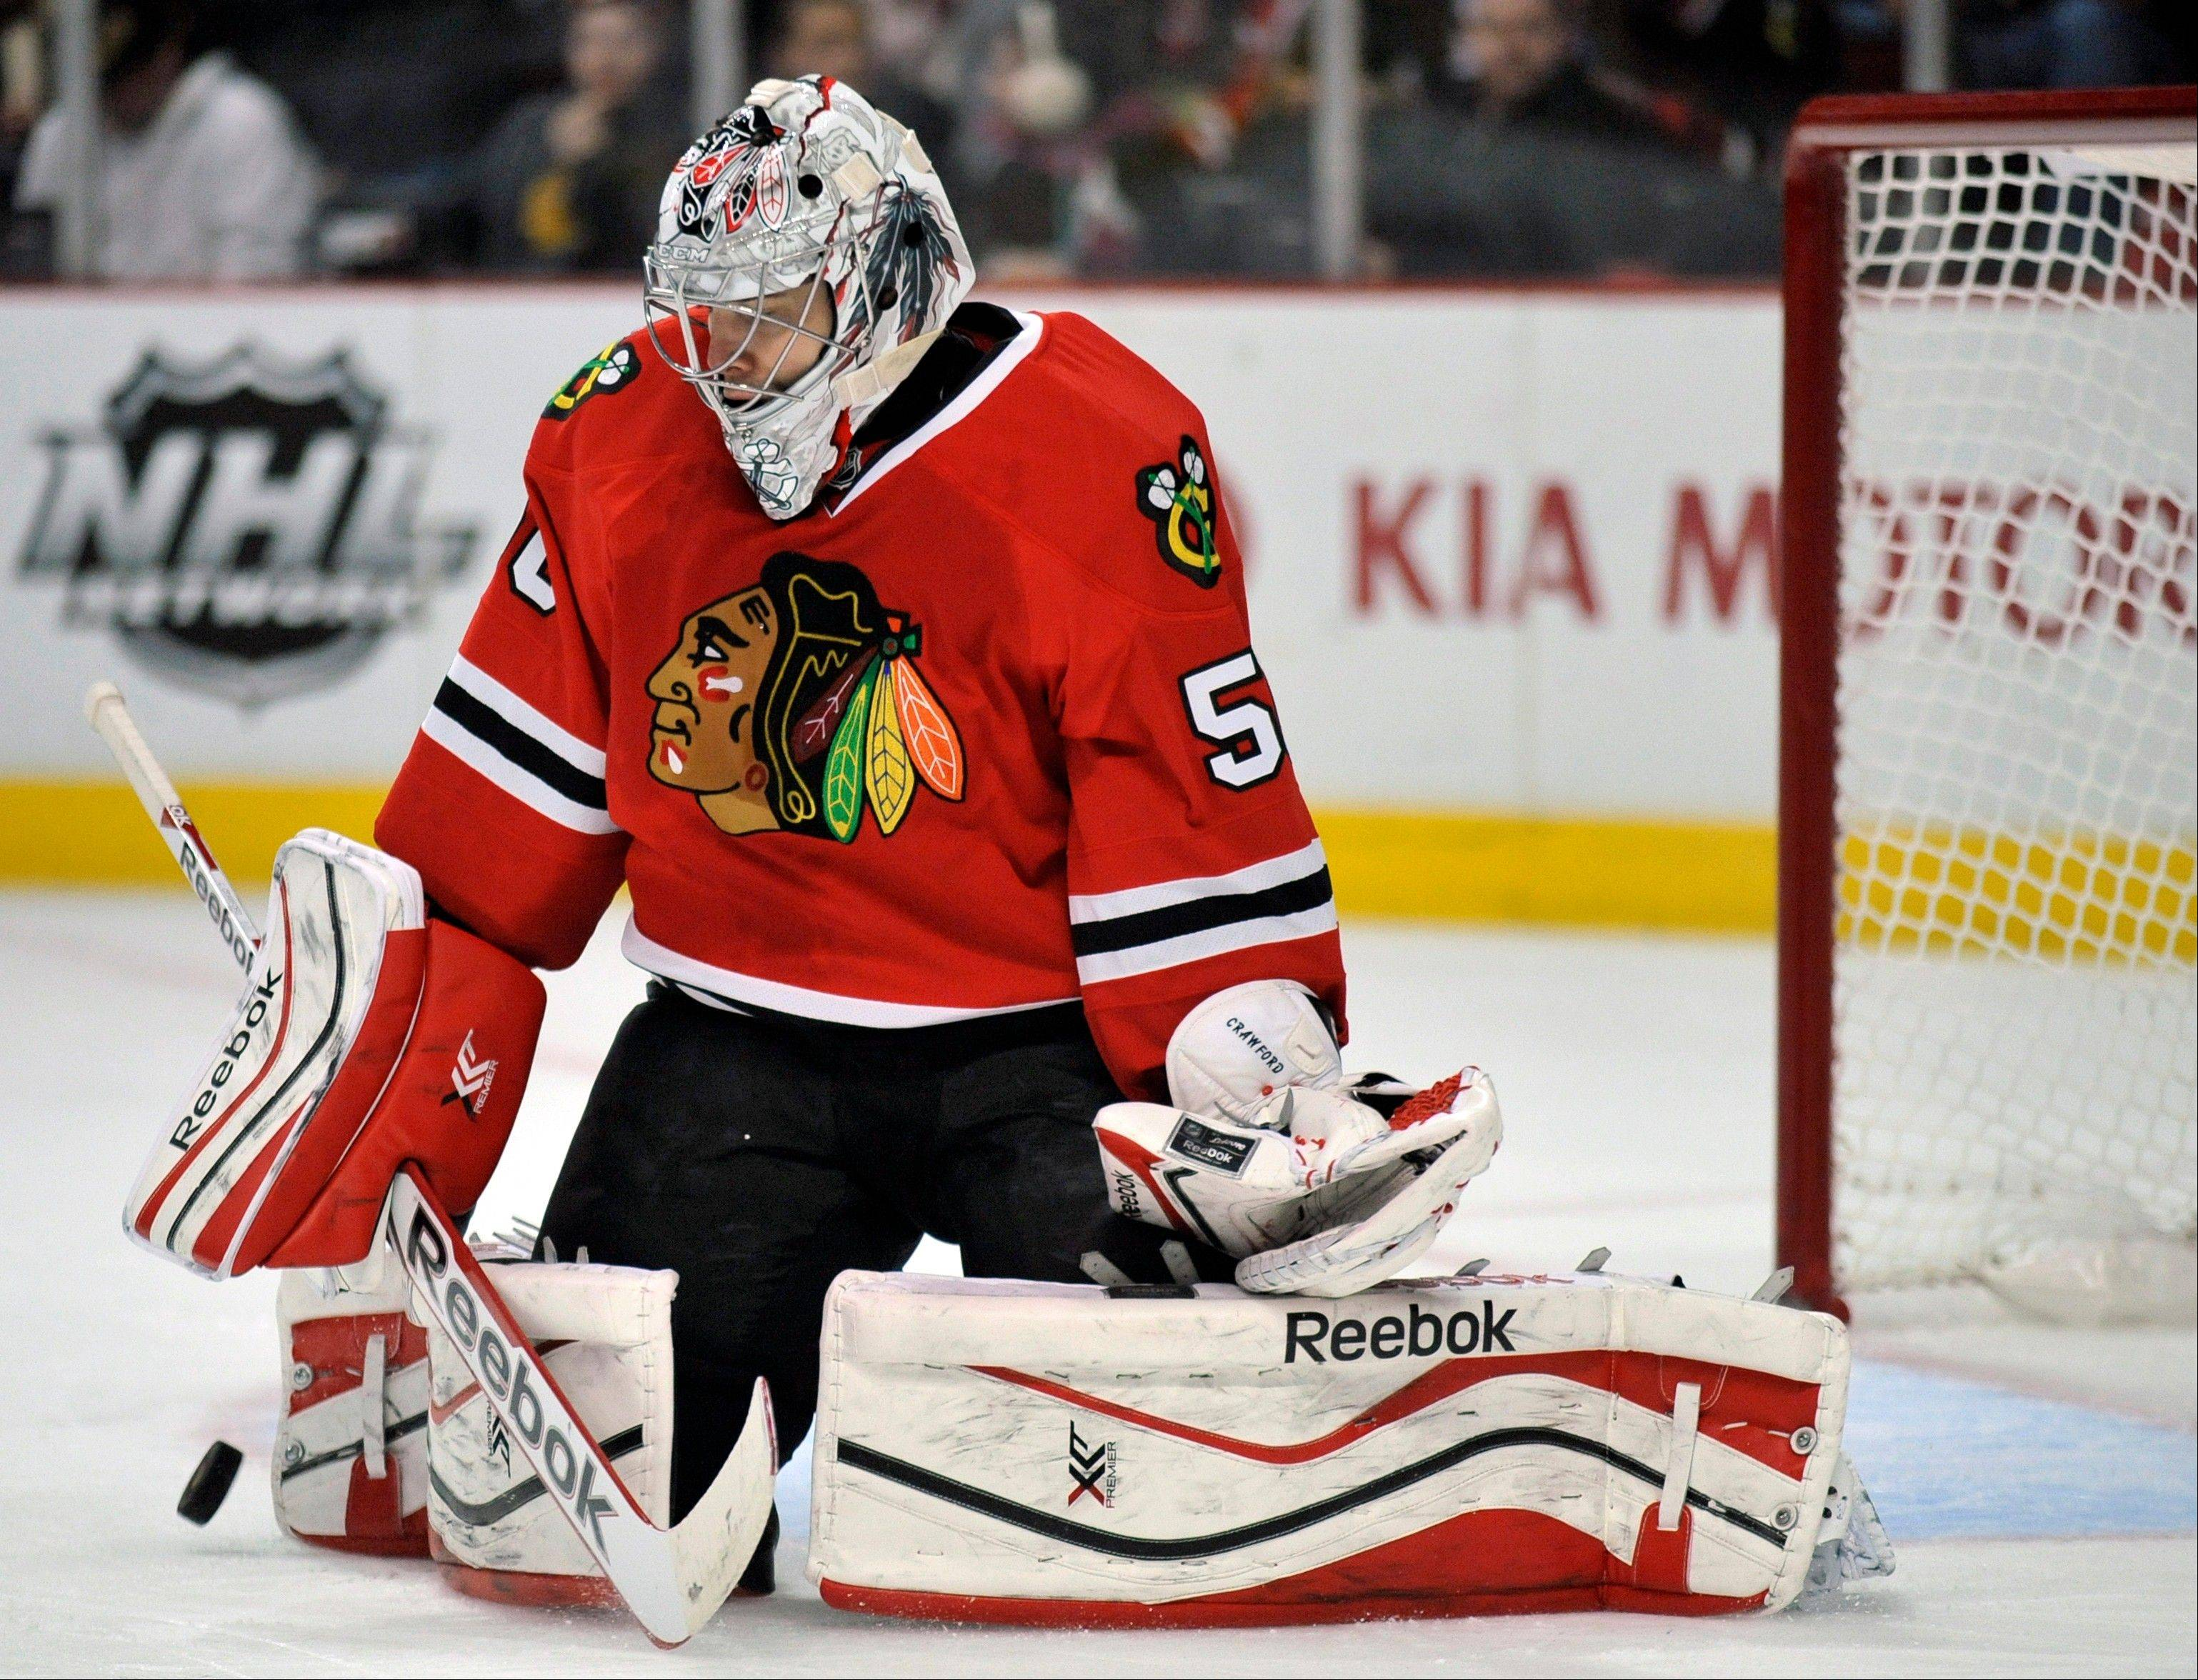 Chicago Blackhawks goalie Corey Crawford makes a save during the first period of an NHL hockey game against the San Jose Sharks in Chicago, Sunday, Jan. 5, 2014. (AP Photo/Paul Beaty)